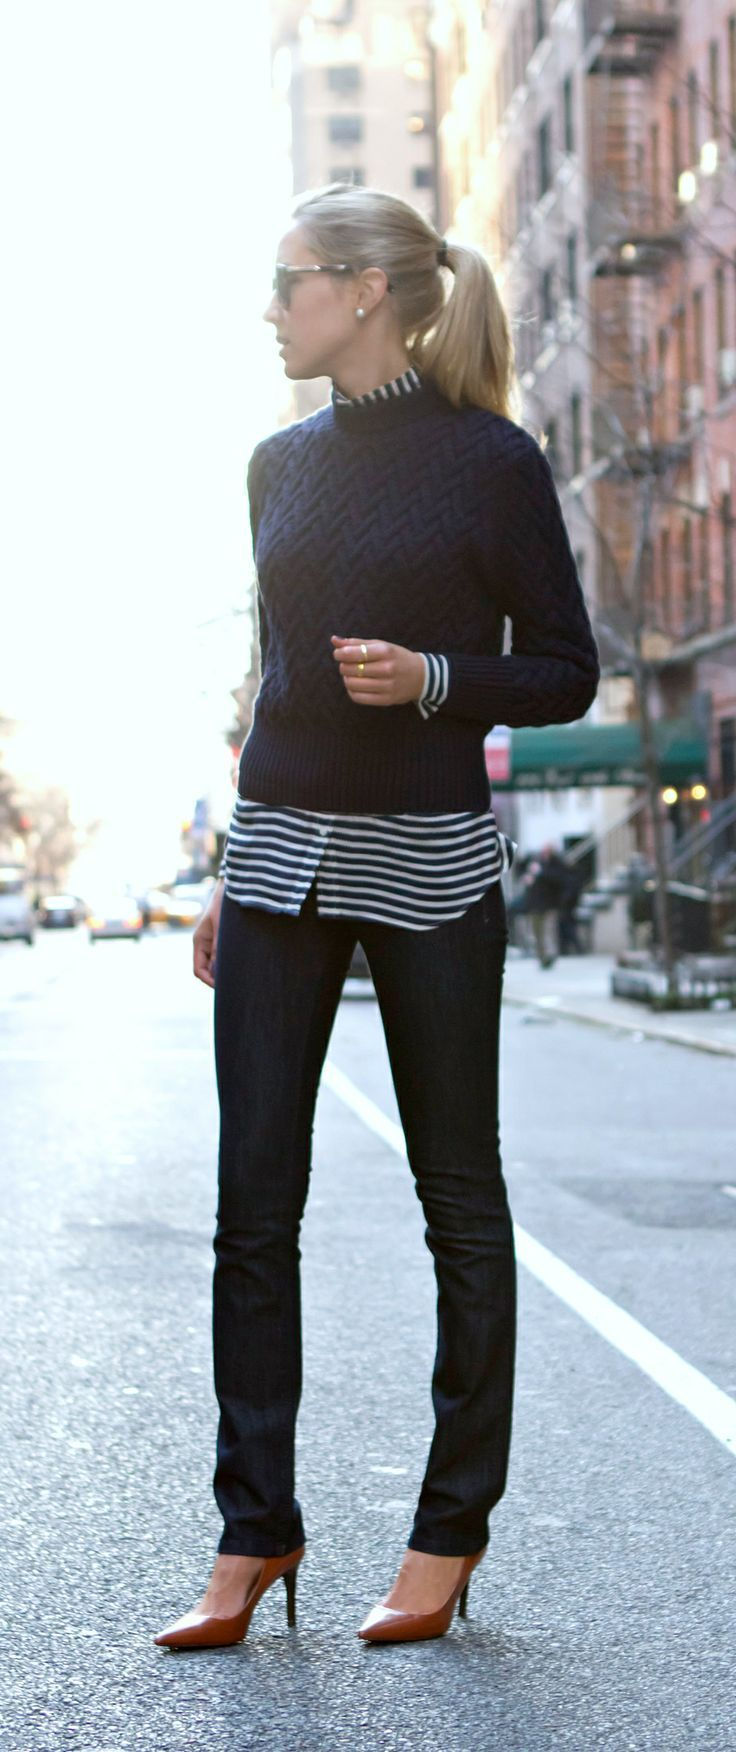 A navy crew-neck pullover and black skinny jeans are perfect for both running errands and a night out. Polish off the ensemble with brown leather pumps.  Shop this look for $79:  http://lookastic.com/women/looks/sunglasses-crew-neck-sweater-dress-shirt-skinny-jeans-pumps/4483  — Black Sunglasses  — Navy Crew-neck Sweater  — White and Navy Horizontal Striped Dress Shirt  — Black Skinny Jeans  — Brown Leather Pumps